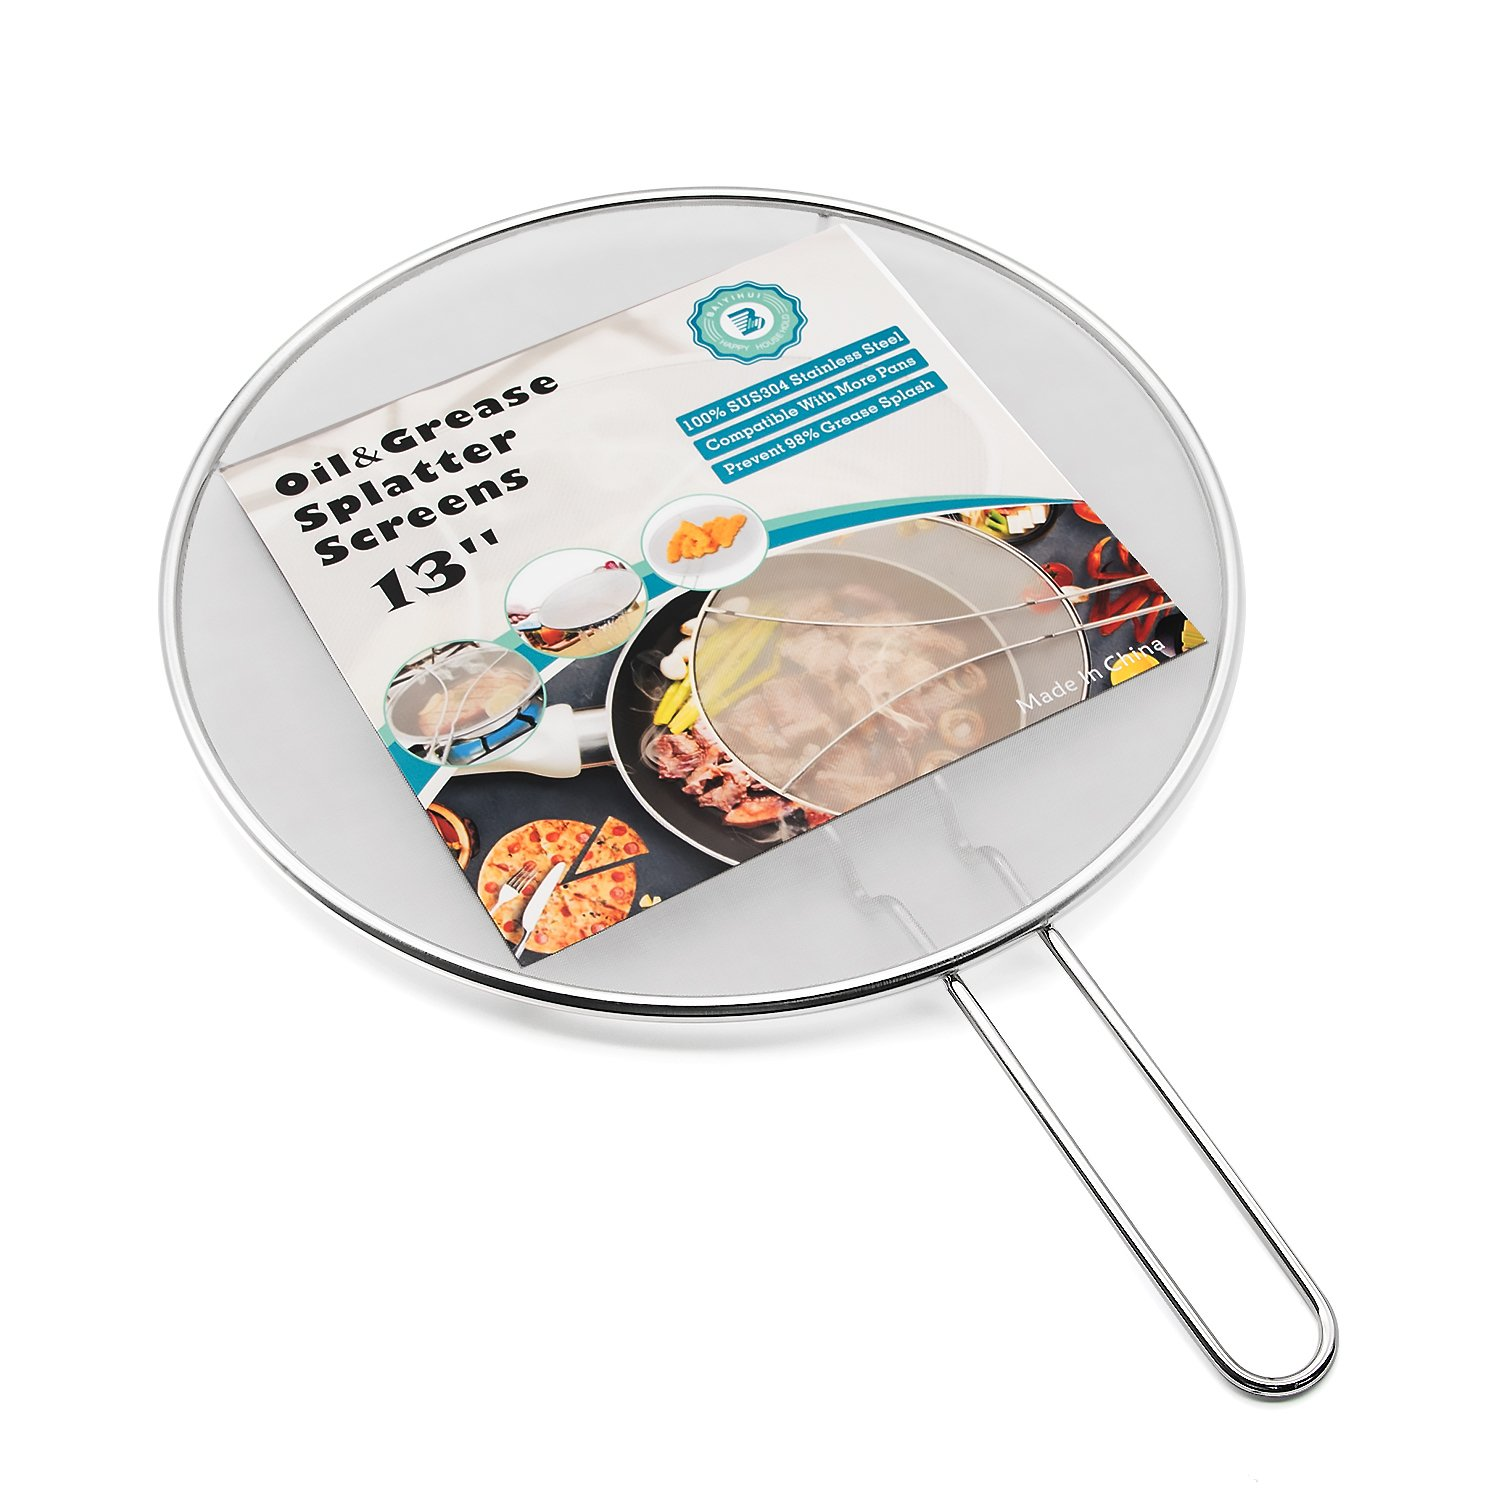 Baiyihui 13'' Splatter Screen for Frying Pan, Professional SUS304 (18/8) Stainless Steel Oil&Grease Splash Guard, Ultra Compact Grid and Resting Feet Design, Stop Over 99% of Oil&Grease Splash